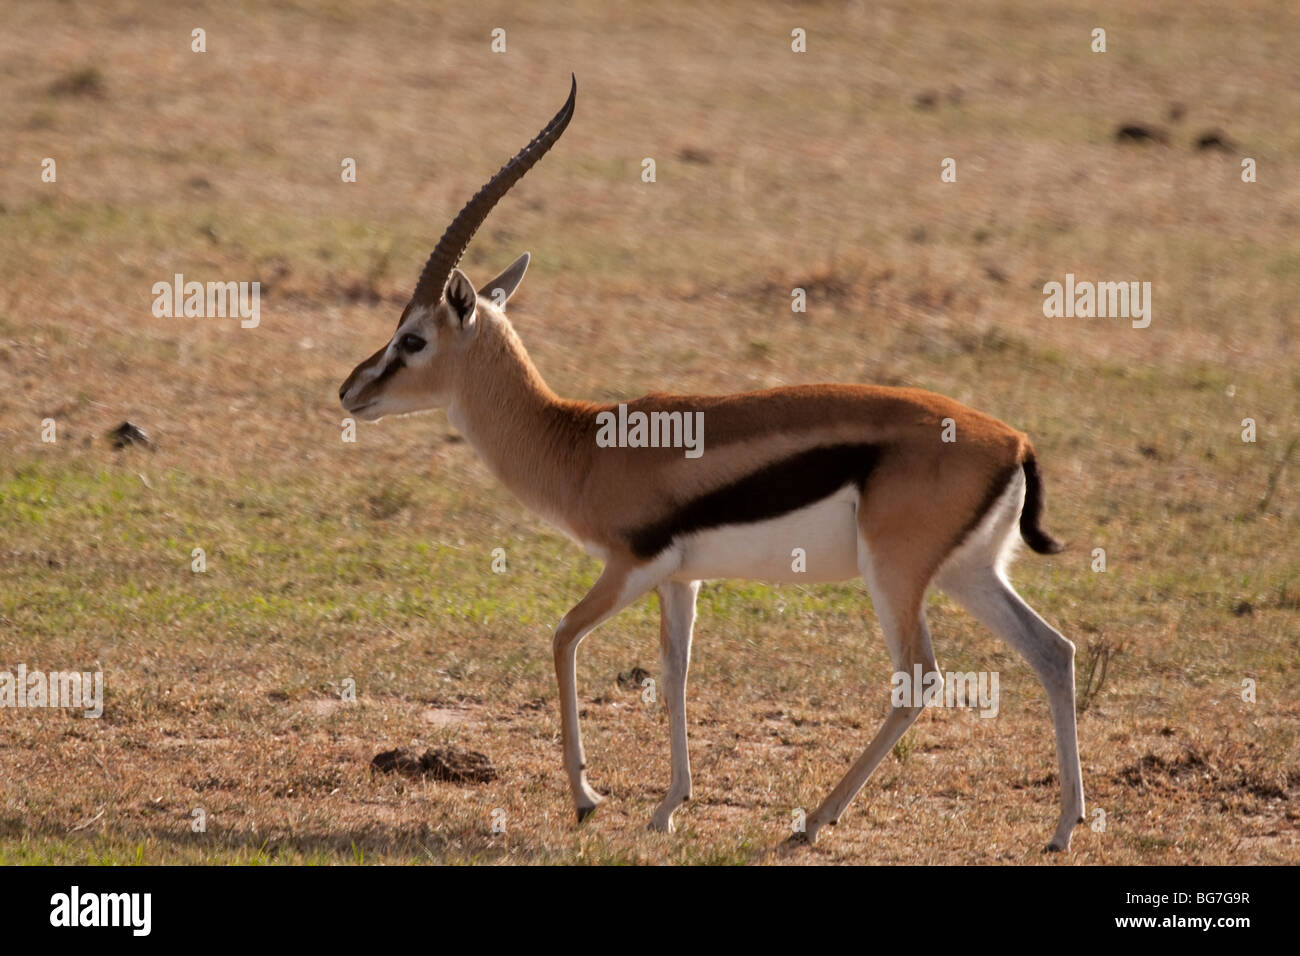 Walking young Thomson's gazelle in National park Masai ...